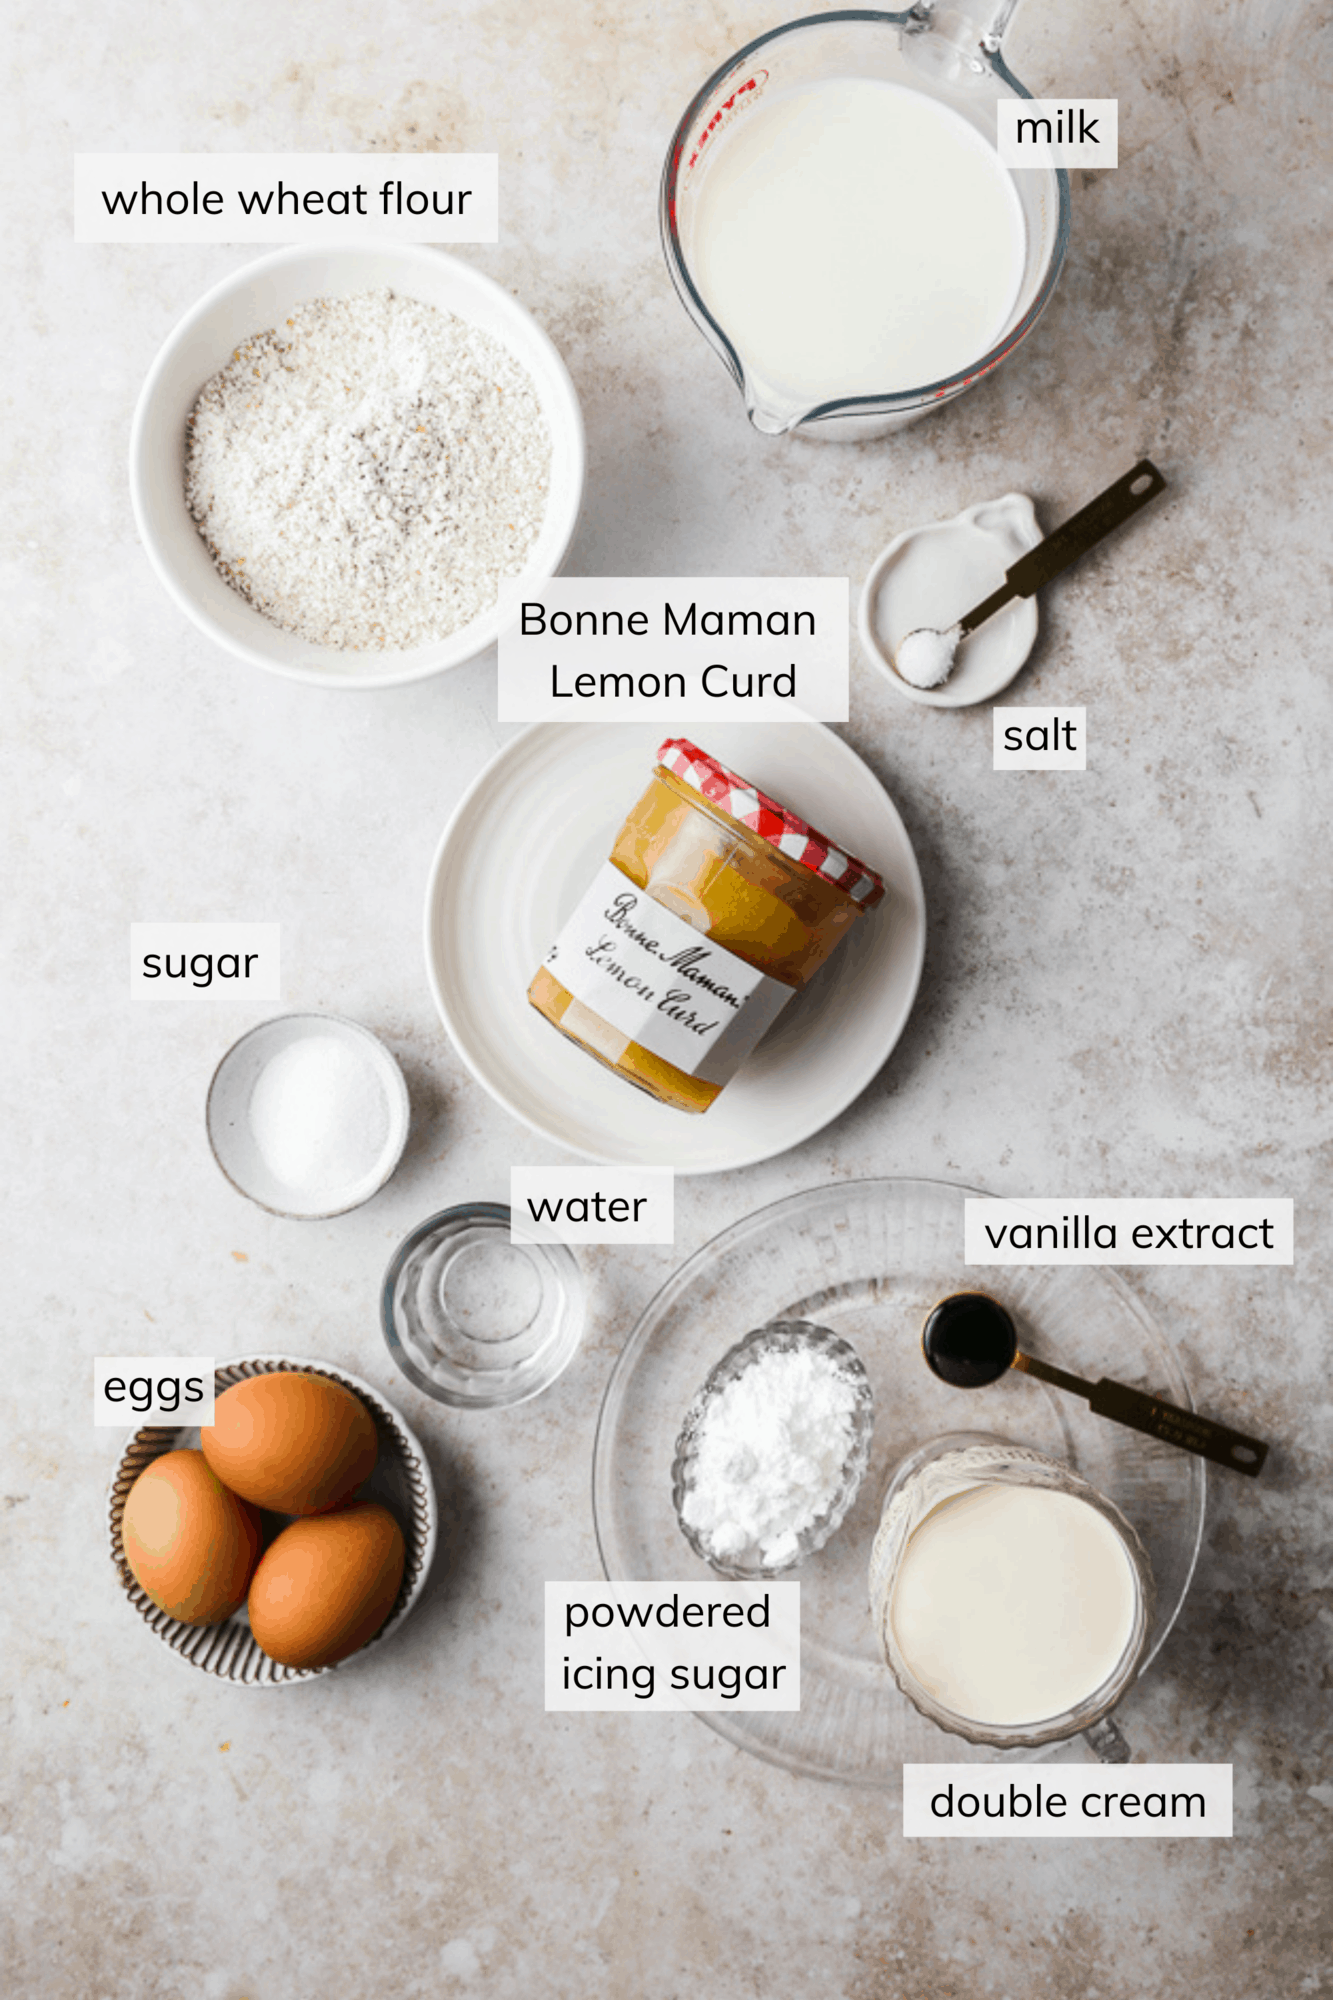 Ingredients for whole wheat crepes